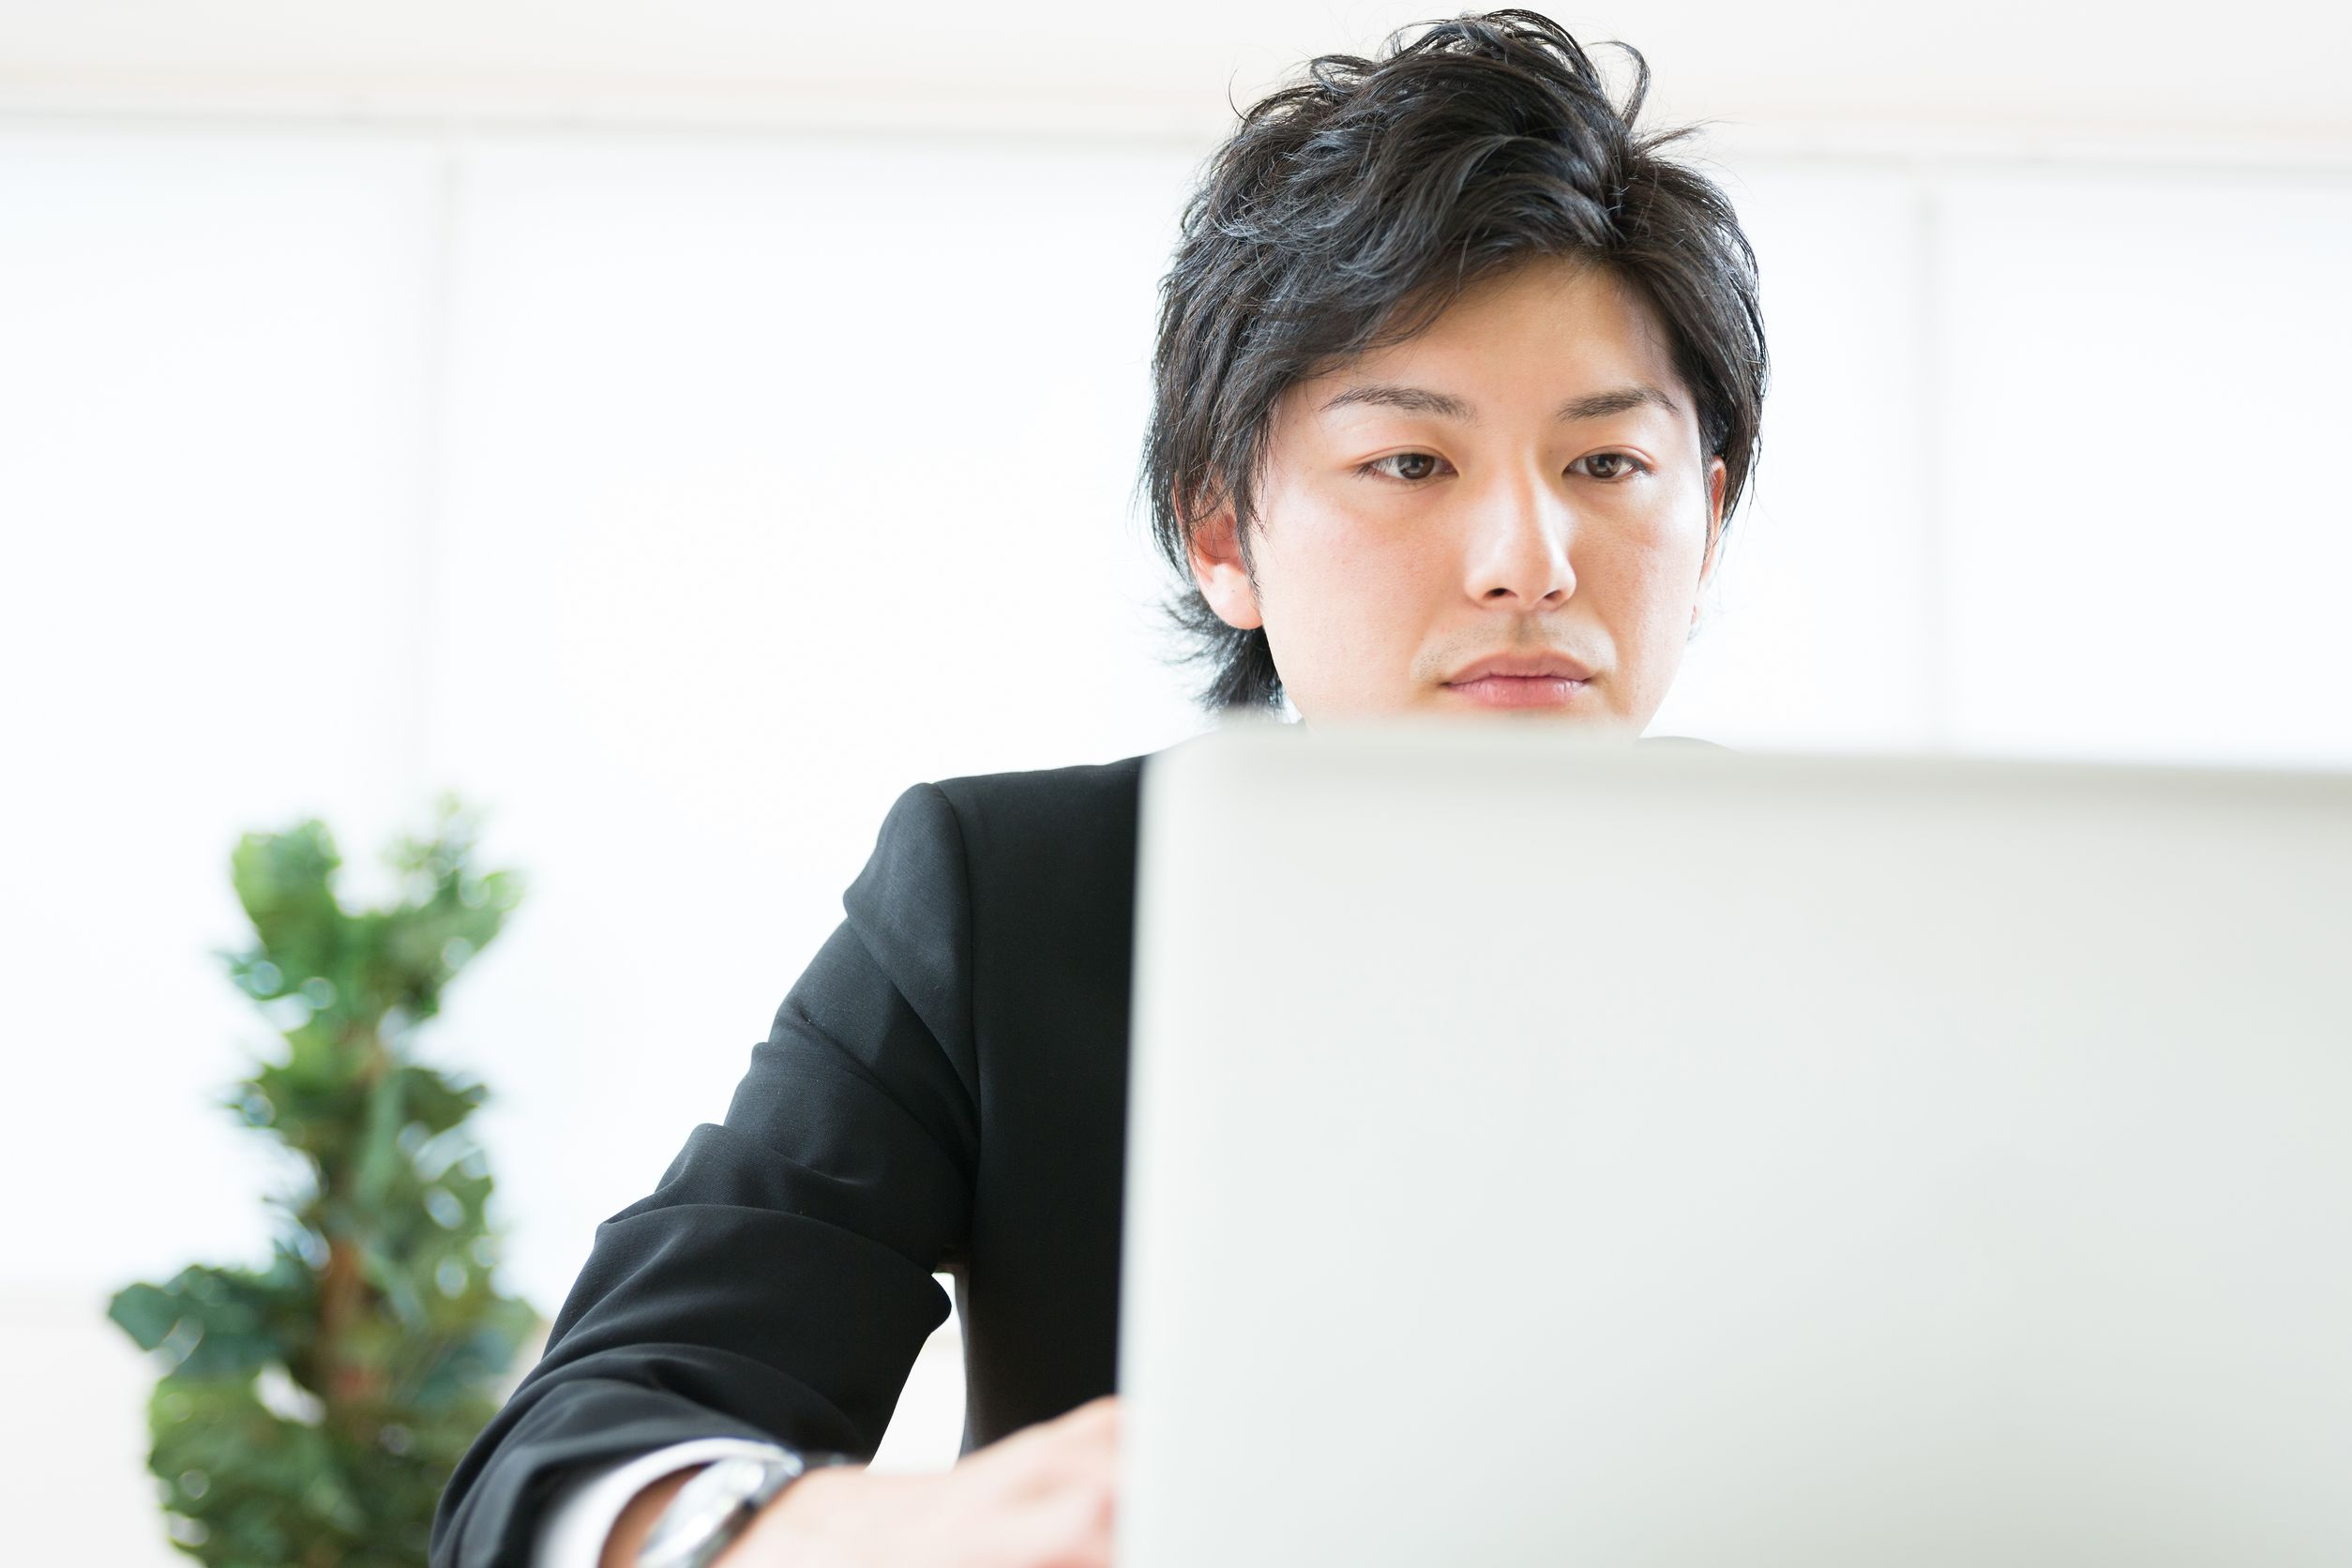 20587570 - young businessman using computer